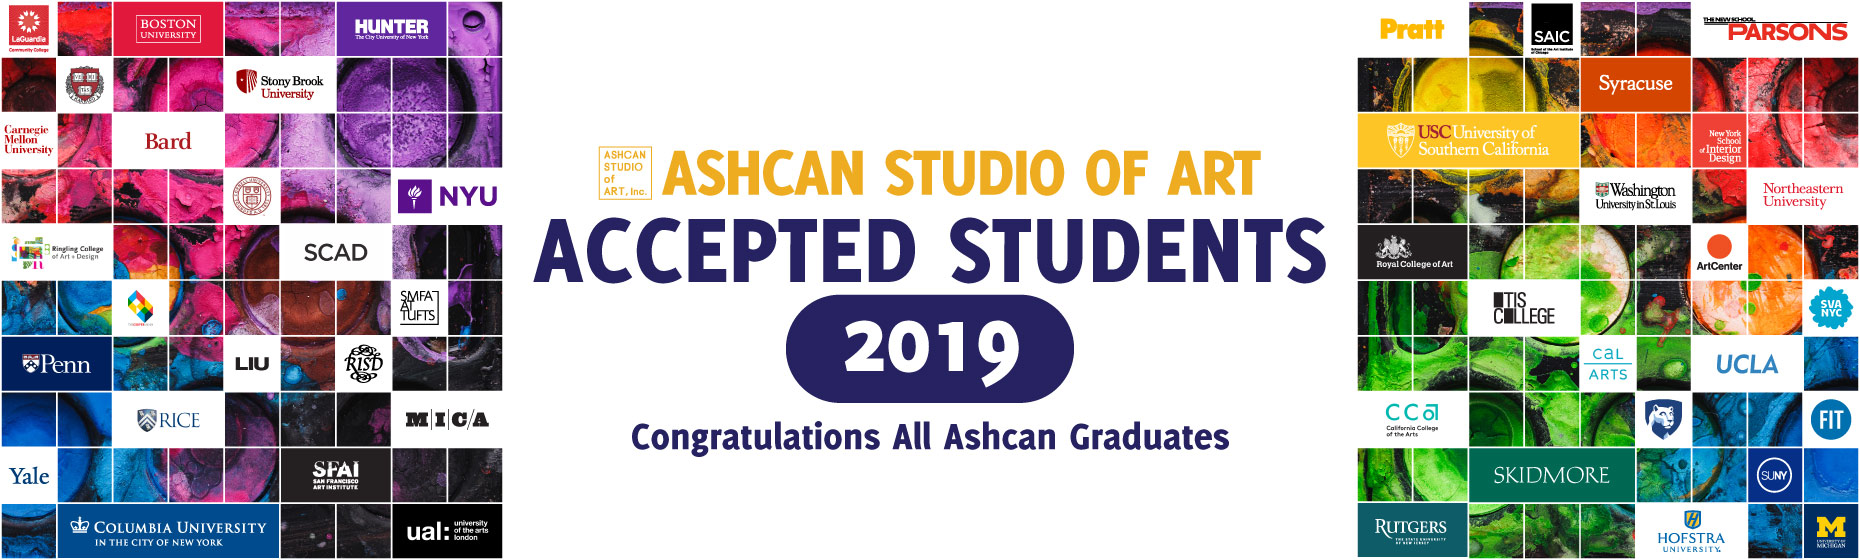 2019-accepted students-featured-US art school-art college-portfolio